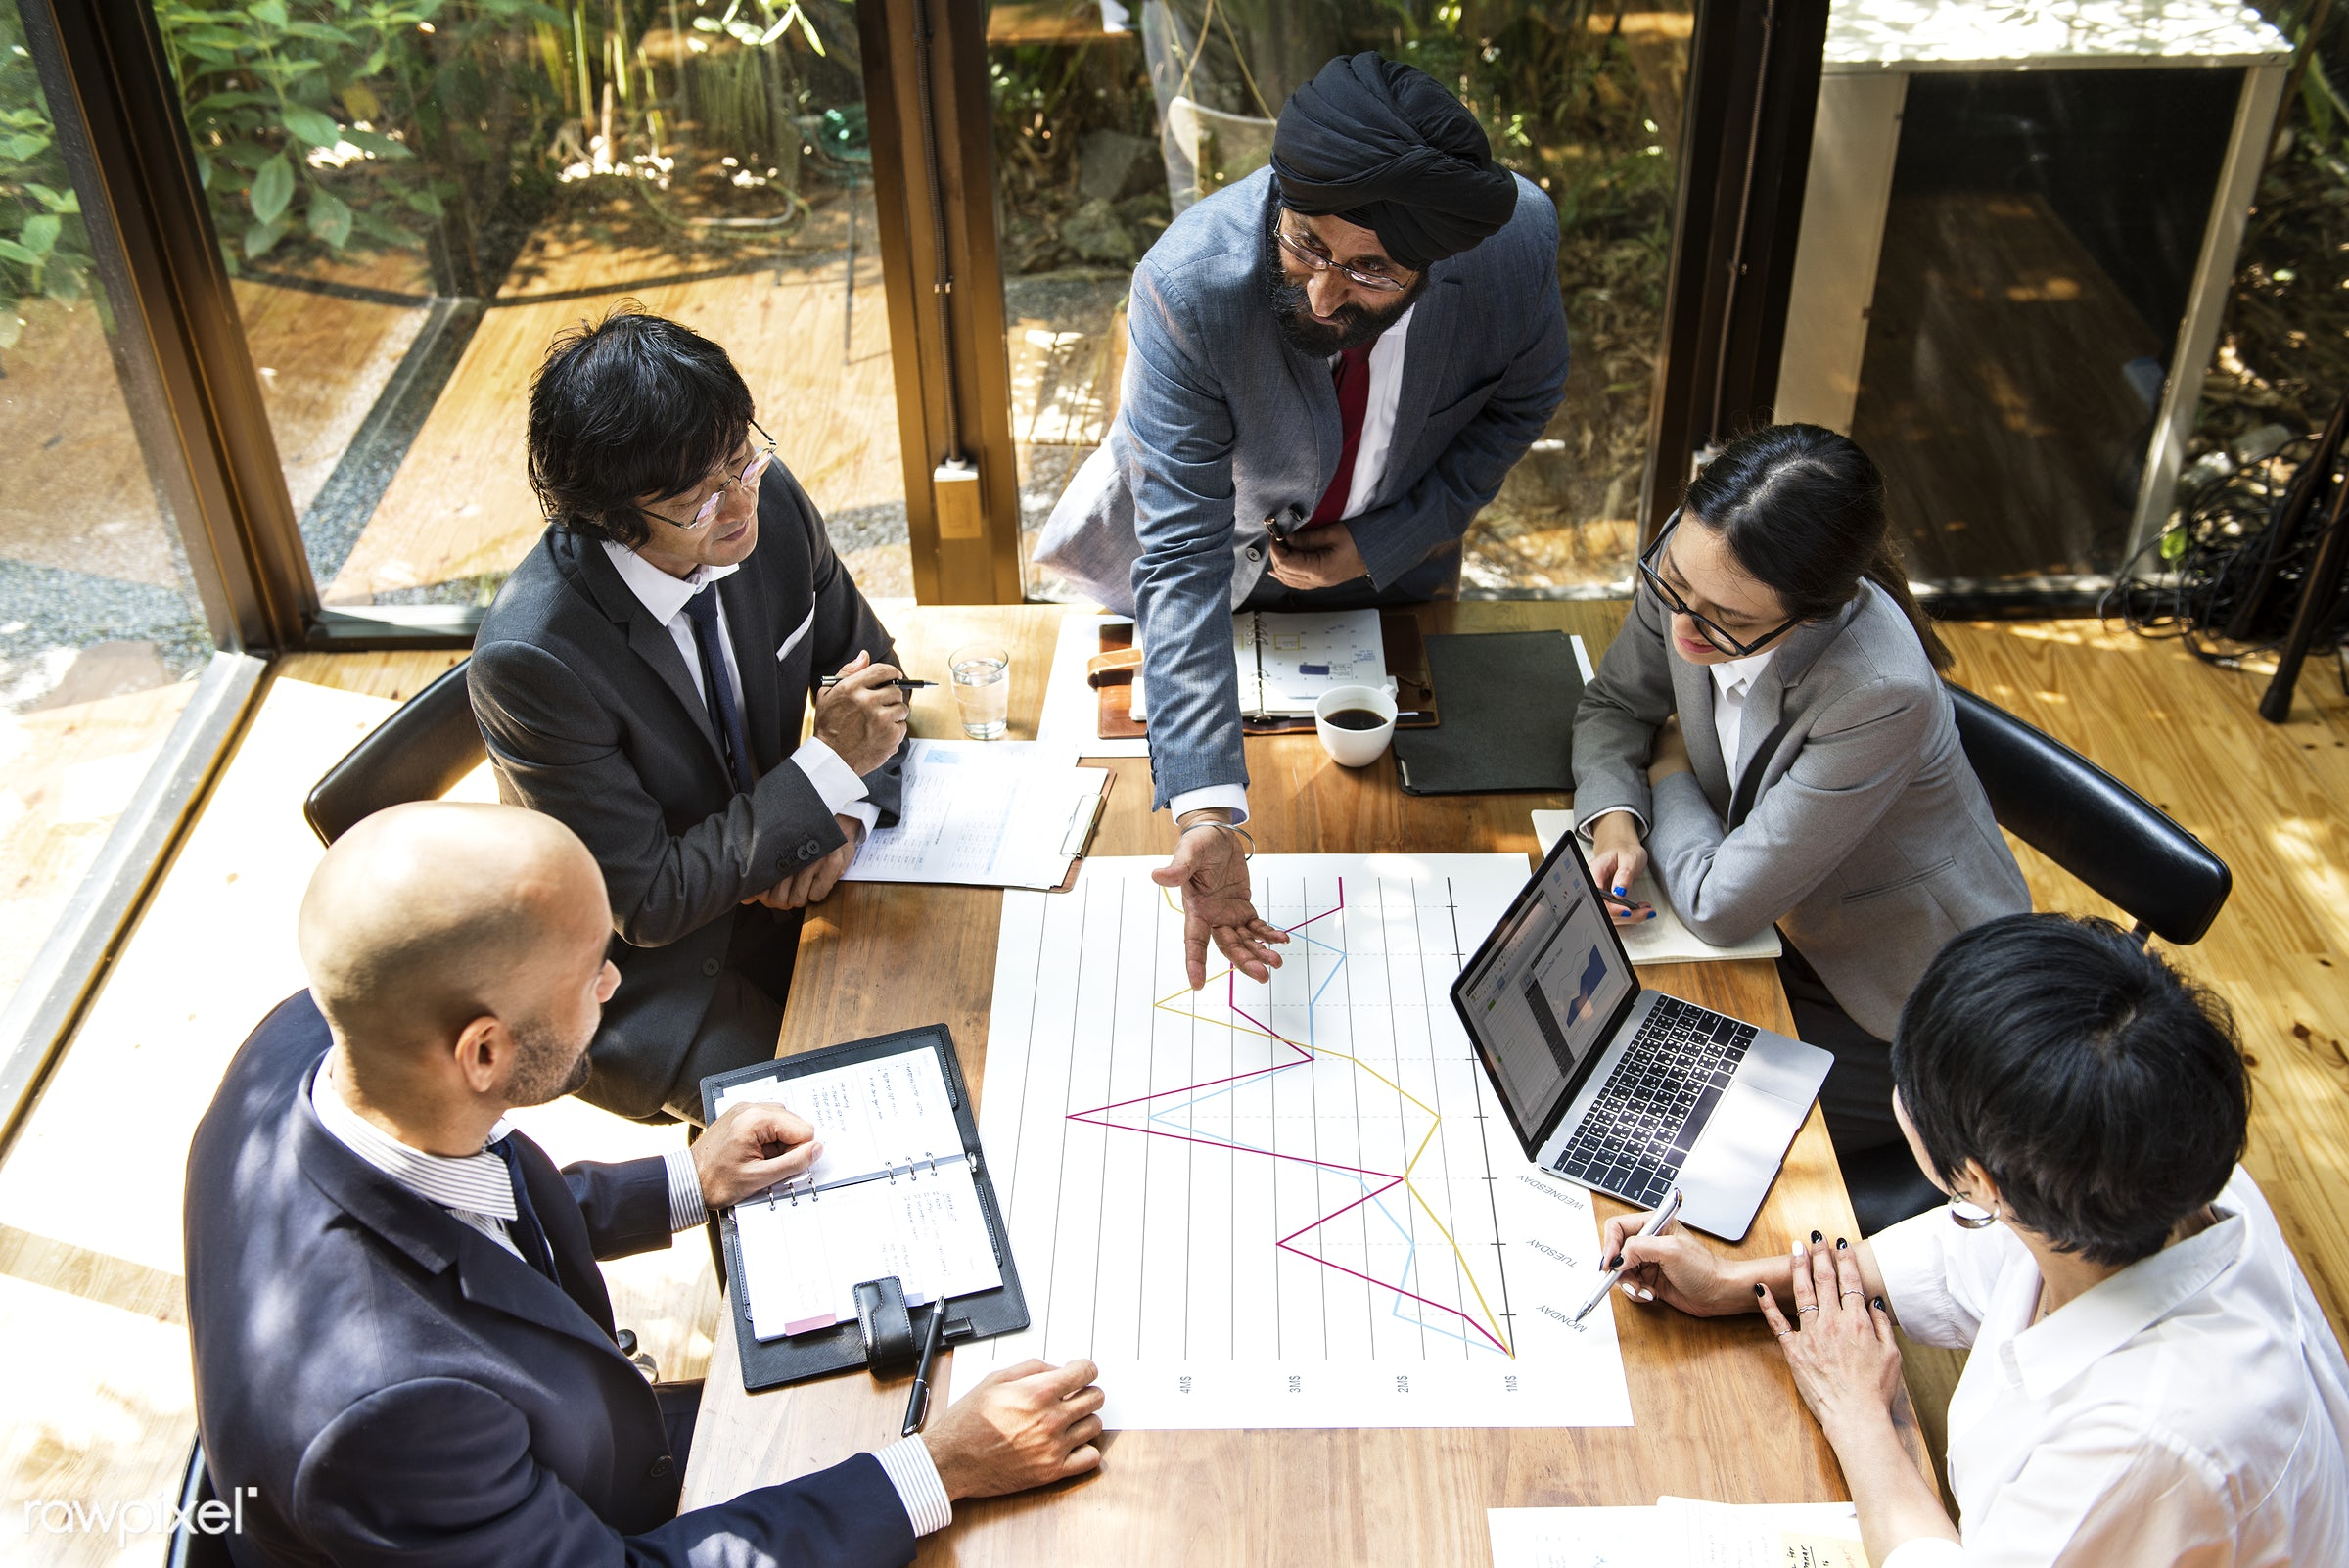 Business meeting in Asia - analysis, asian ethnicity, board room, brainstorming, business, business people, business plan,...